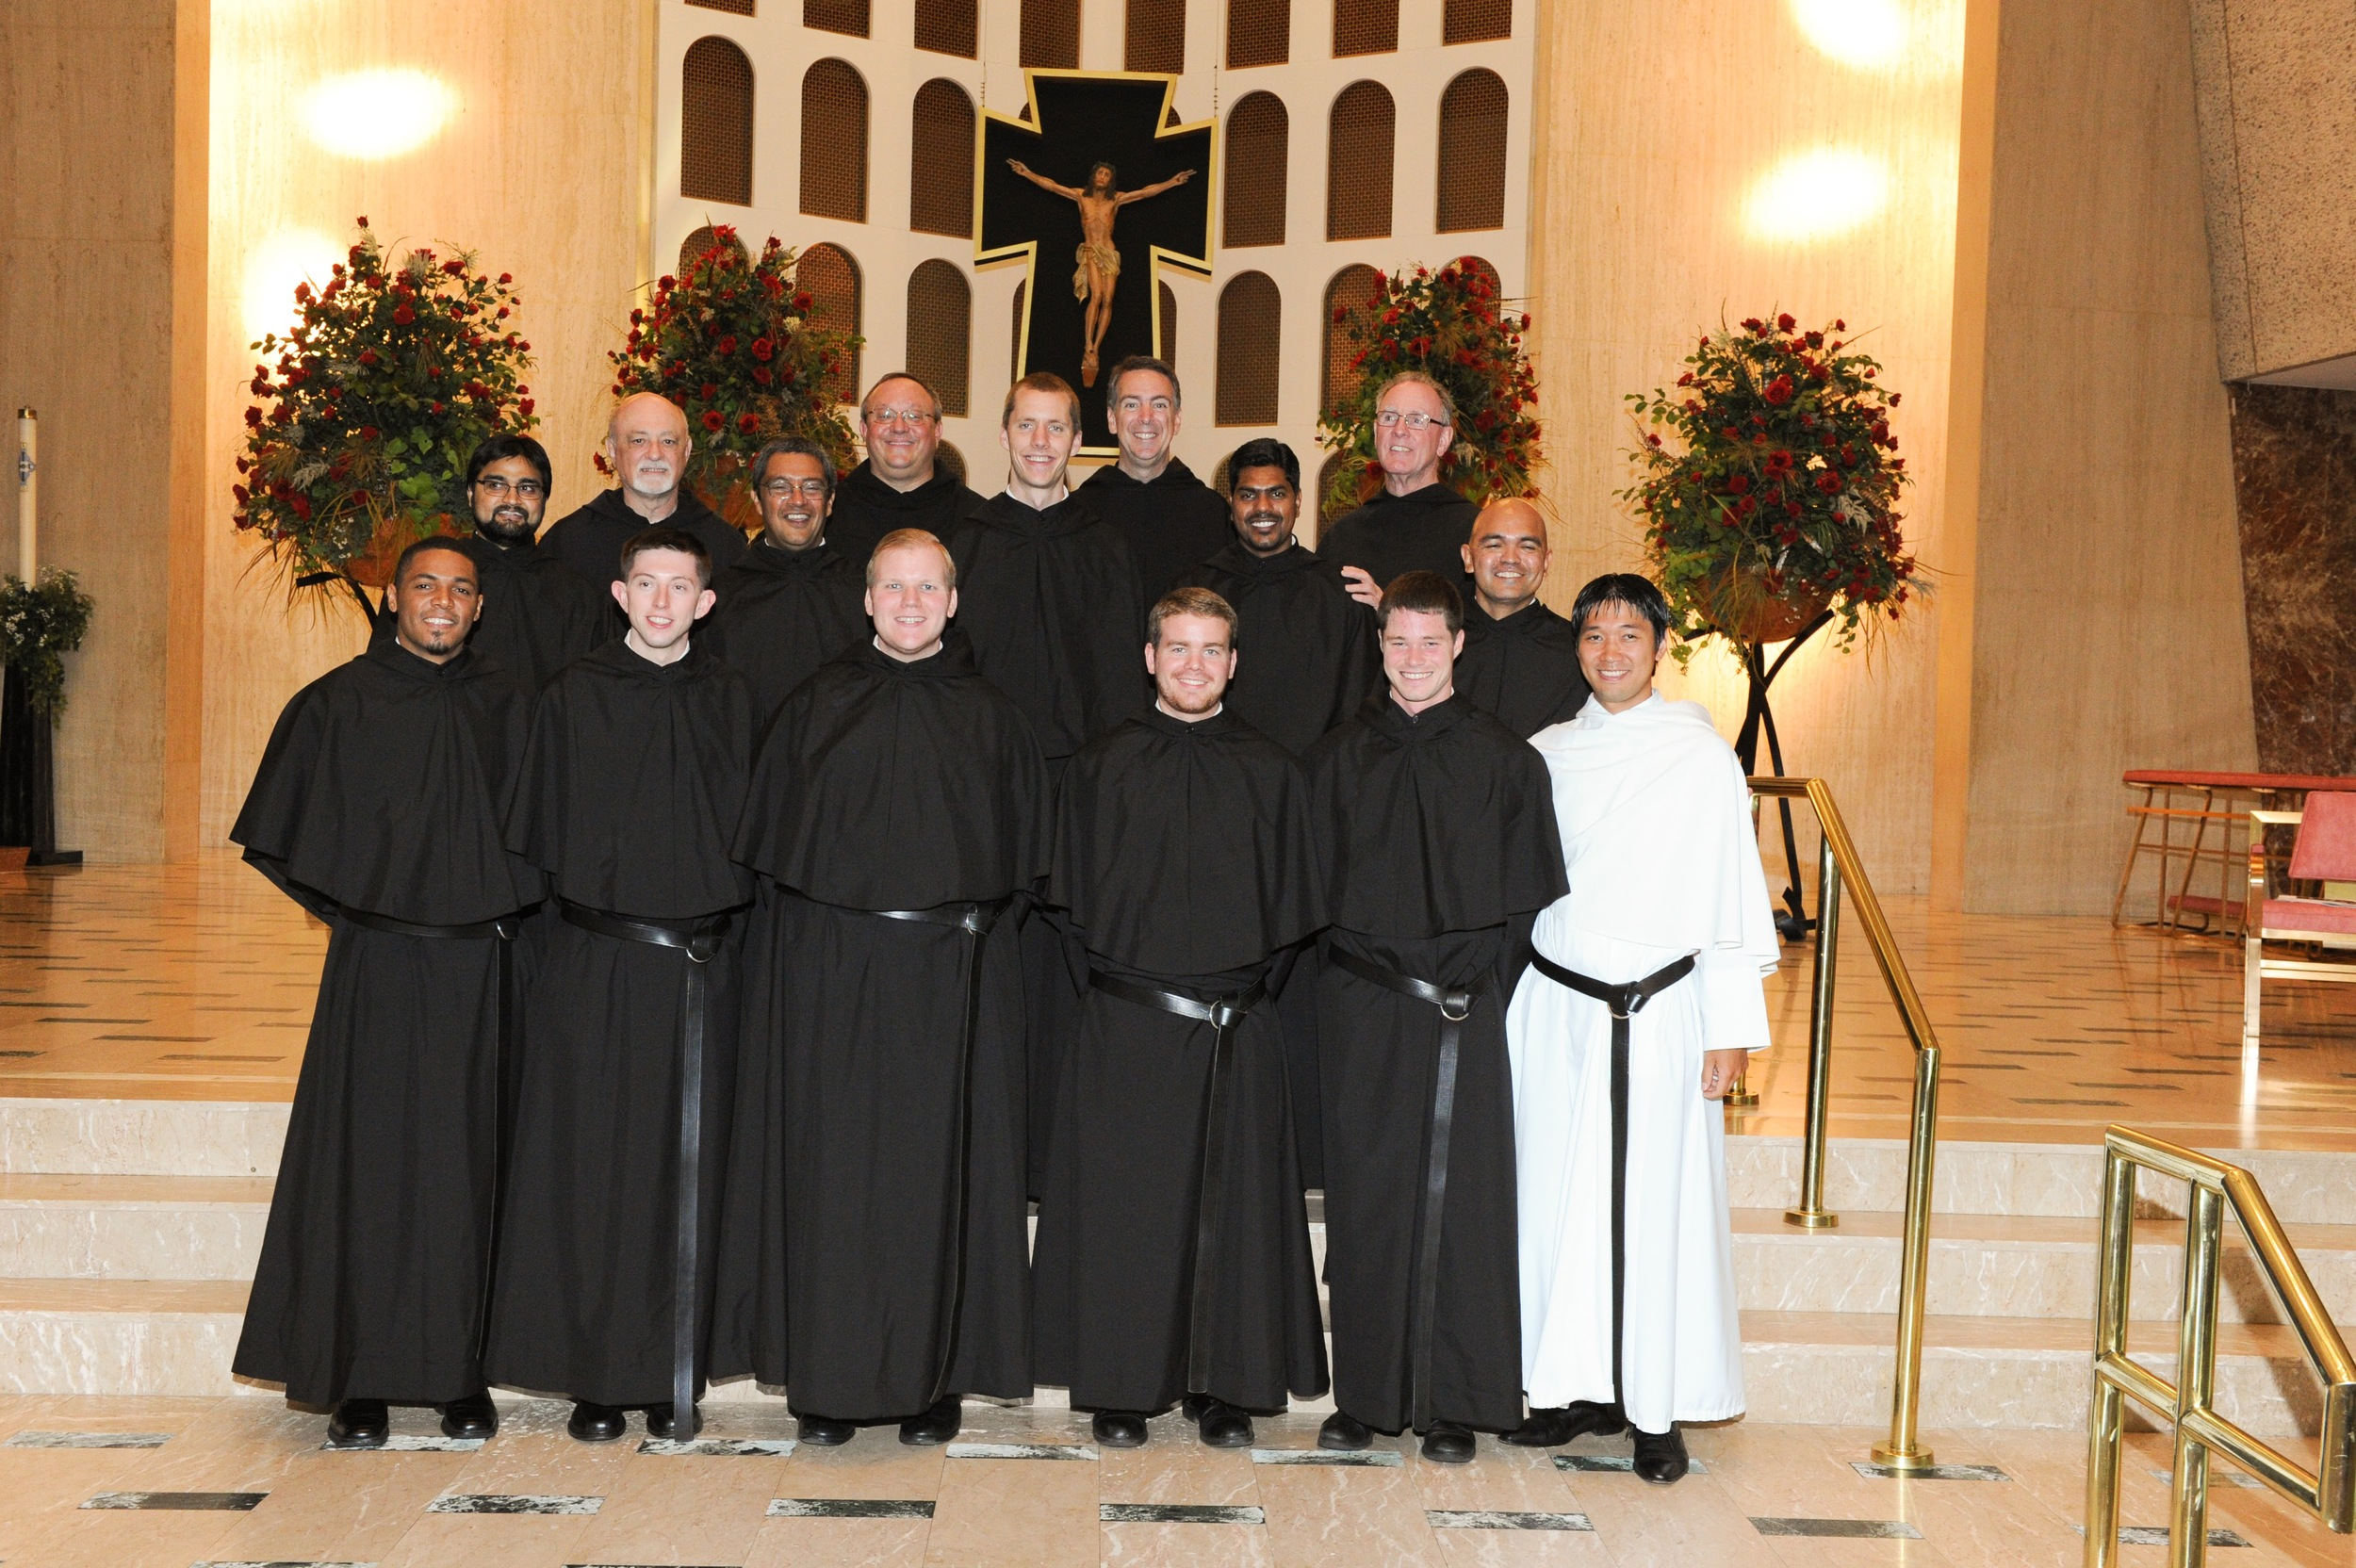 Eleven Novices professed their first vows in the Augustinian Order in 2016, the largest group in over 40 years.